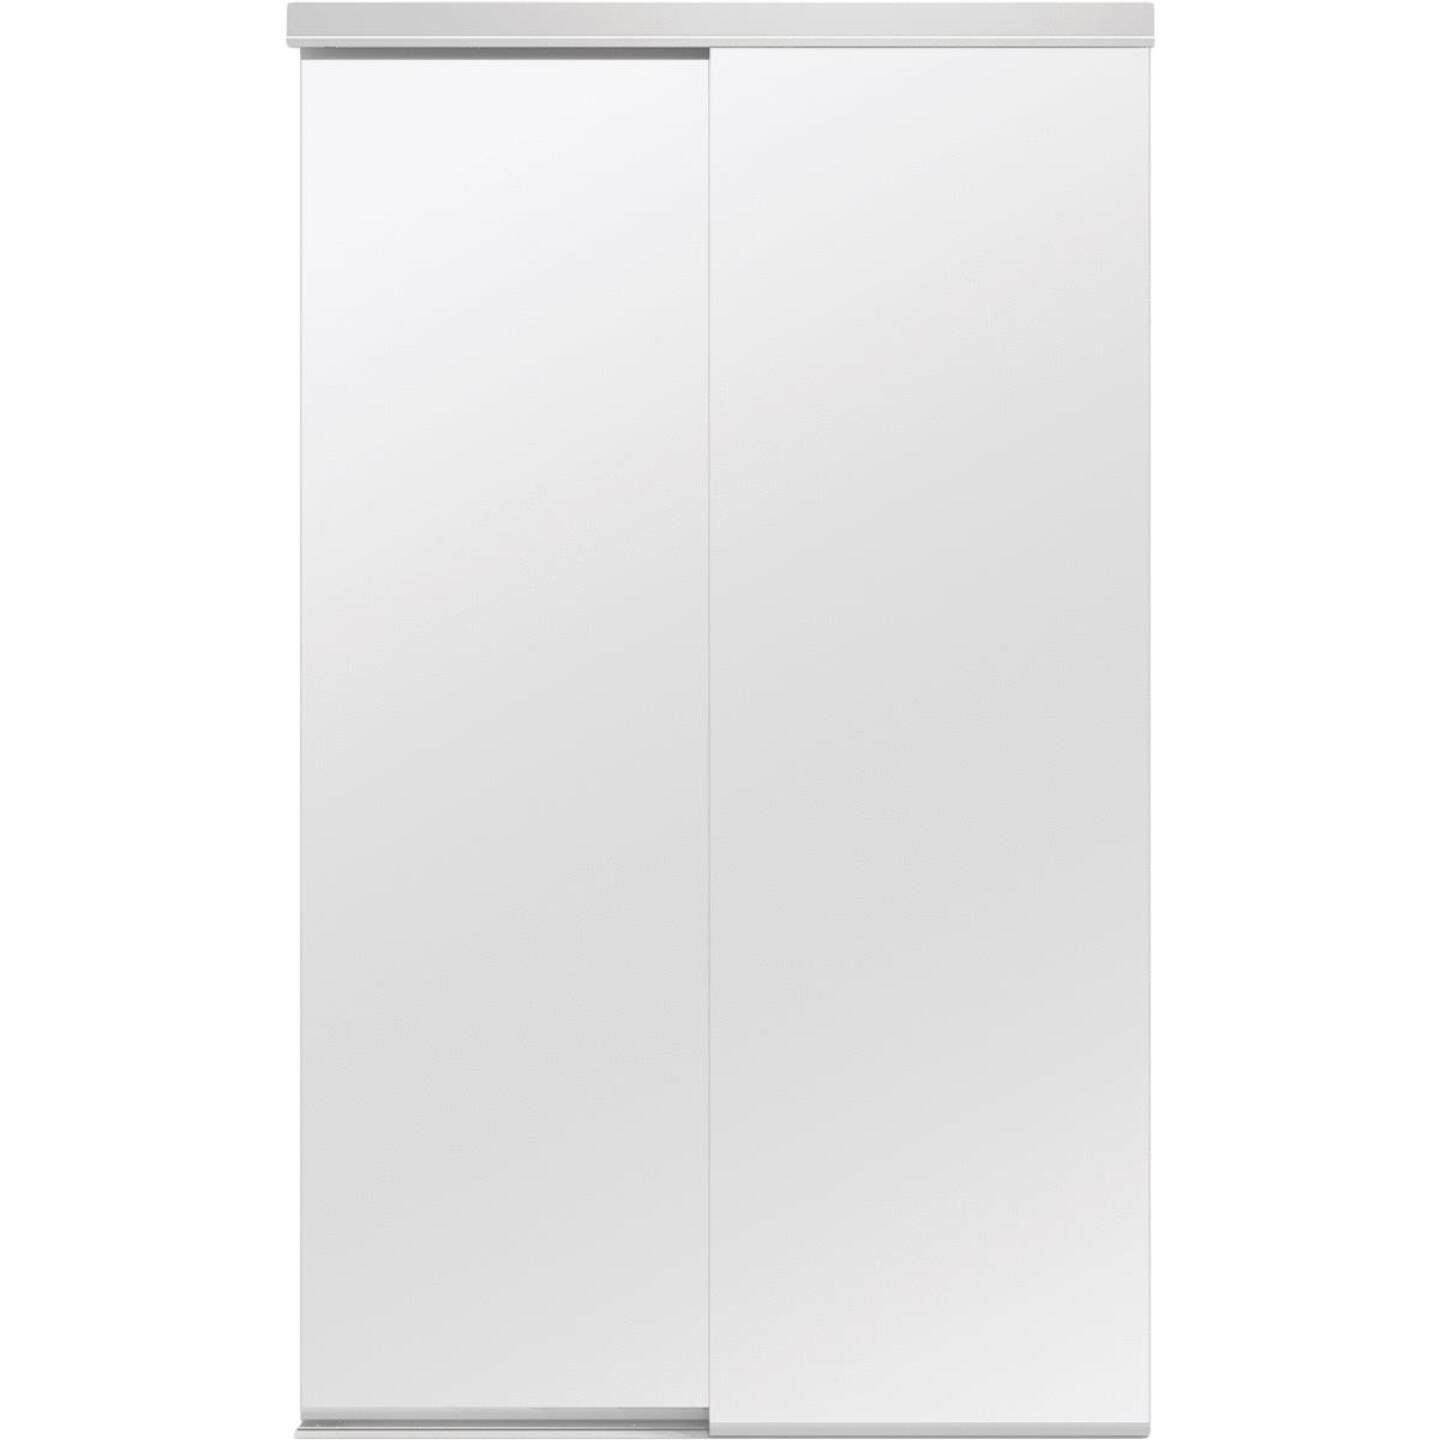 Colonial Elegance Classic 48 In. W x 80-1/2 In. H White Frameless Mirrored Sliding Bypass Door Image 1